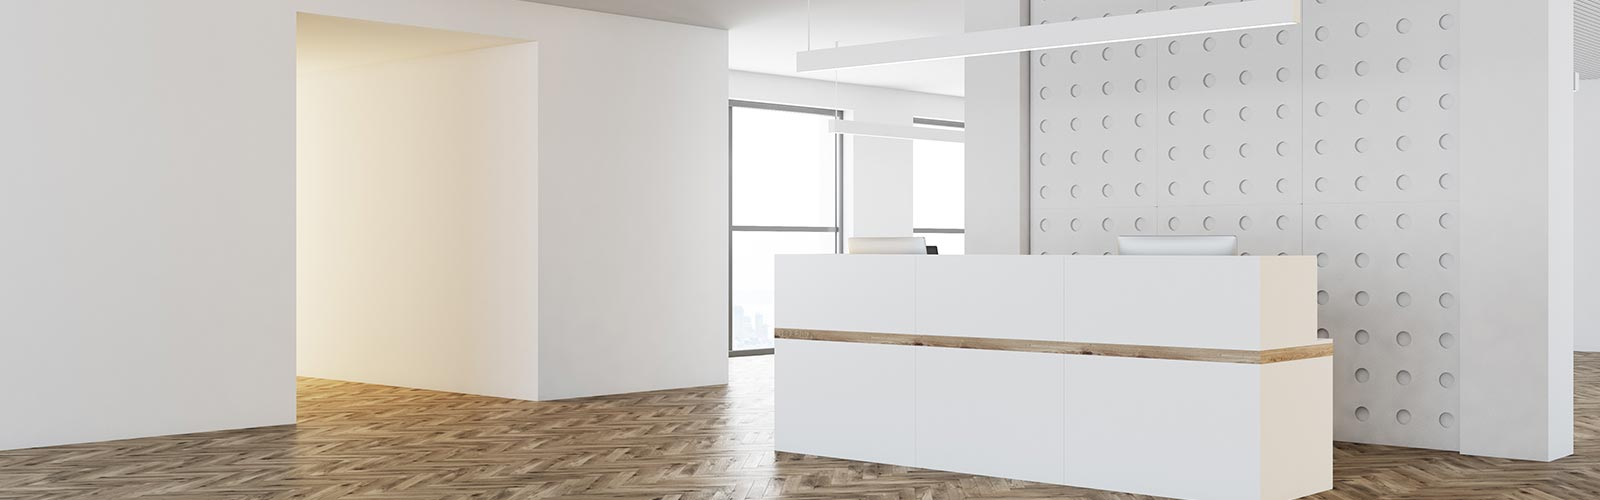 What is an office fit out and how does it differ from an office refurbishment?